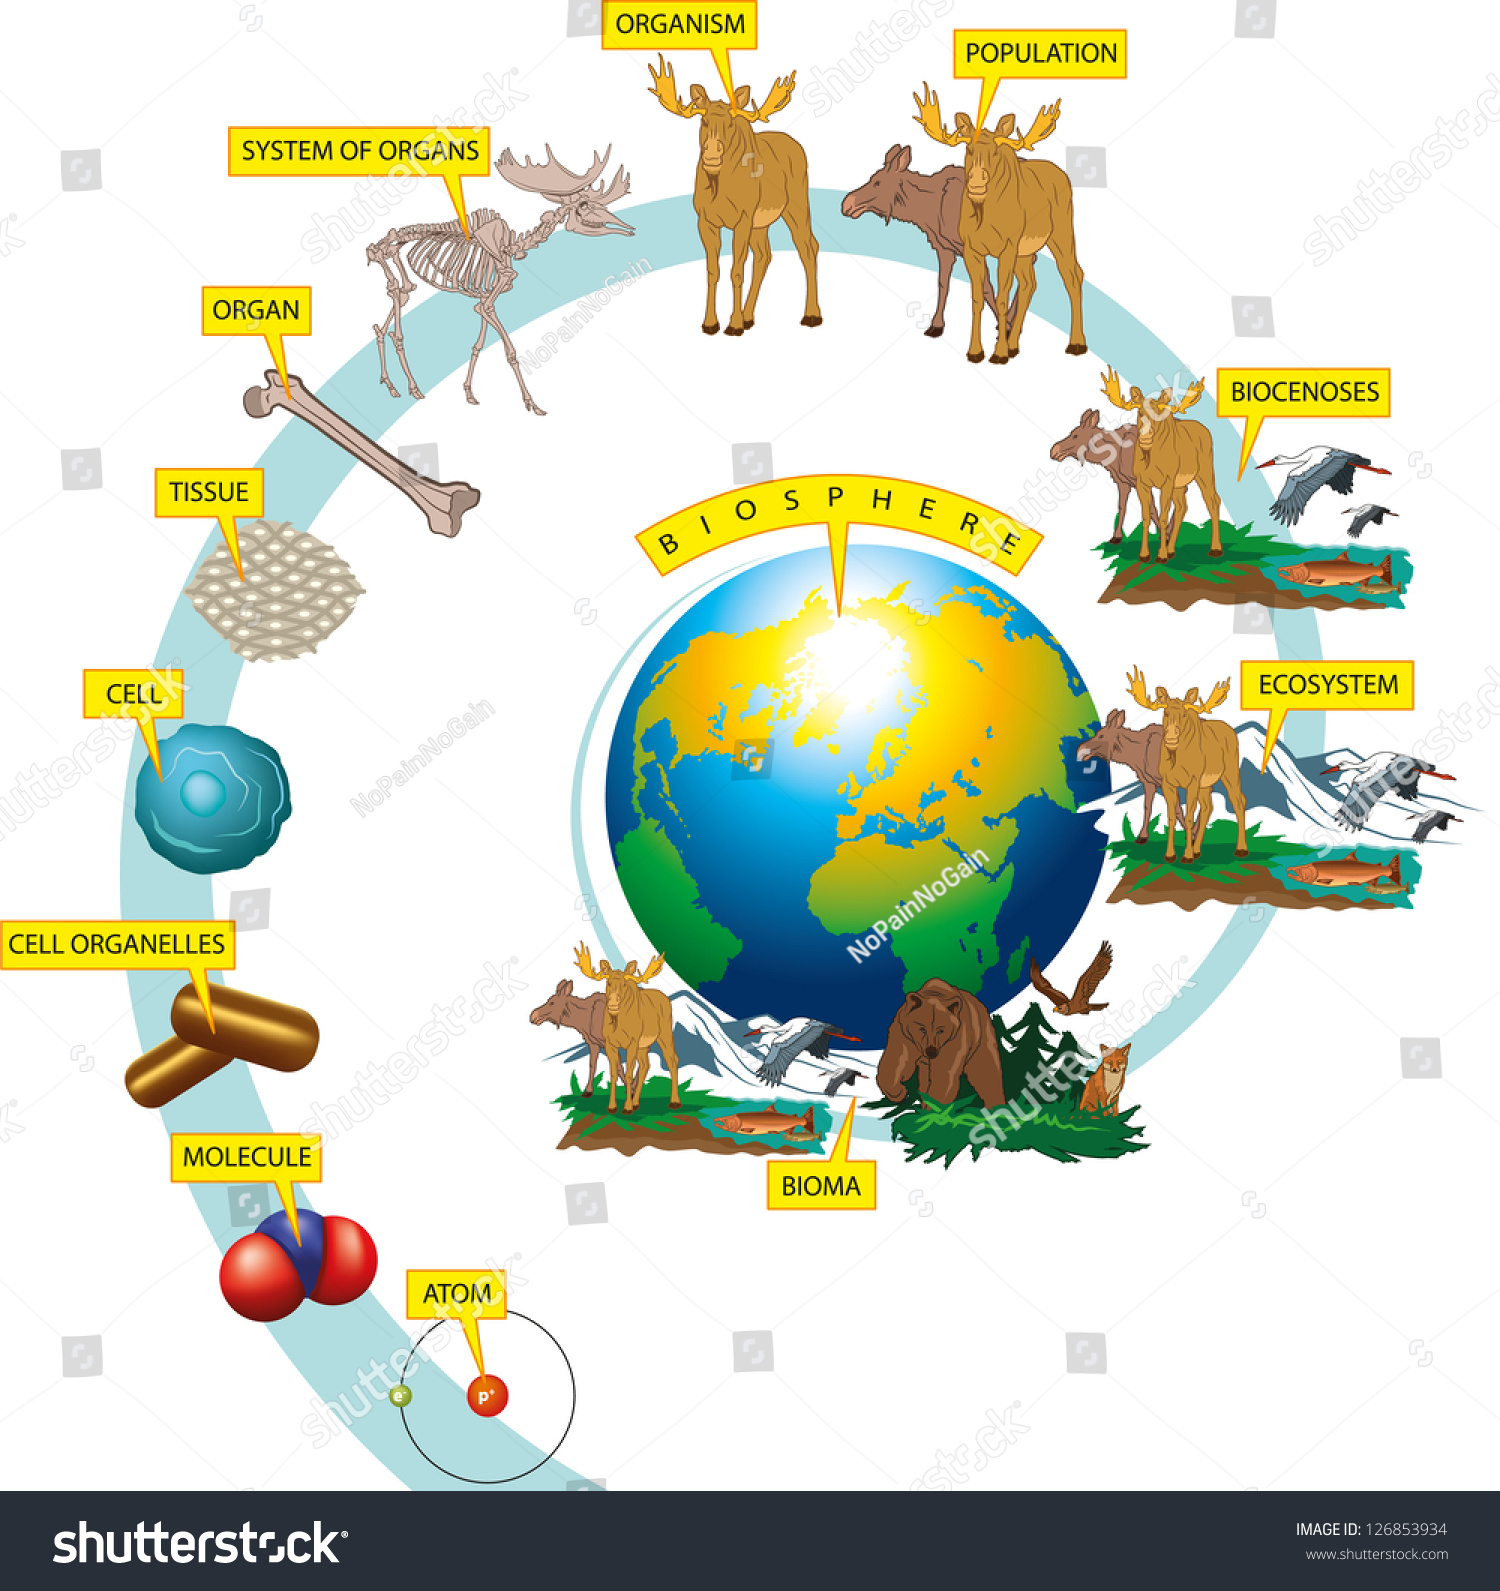 Hierarchy Biological Organization Stock Vector